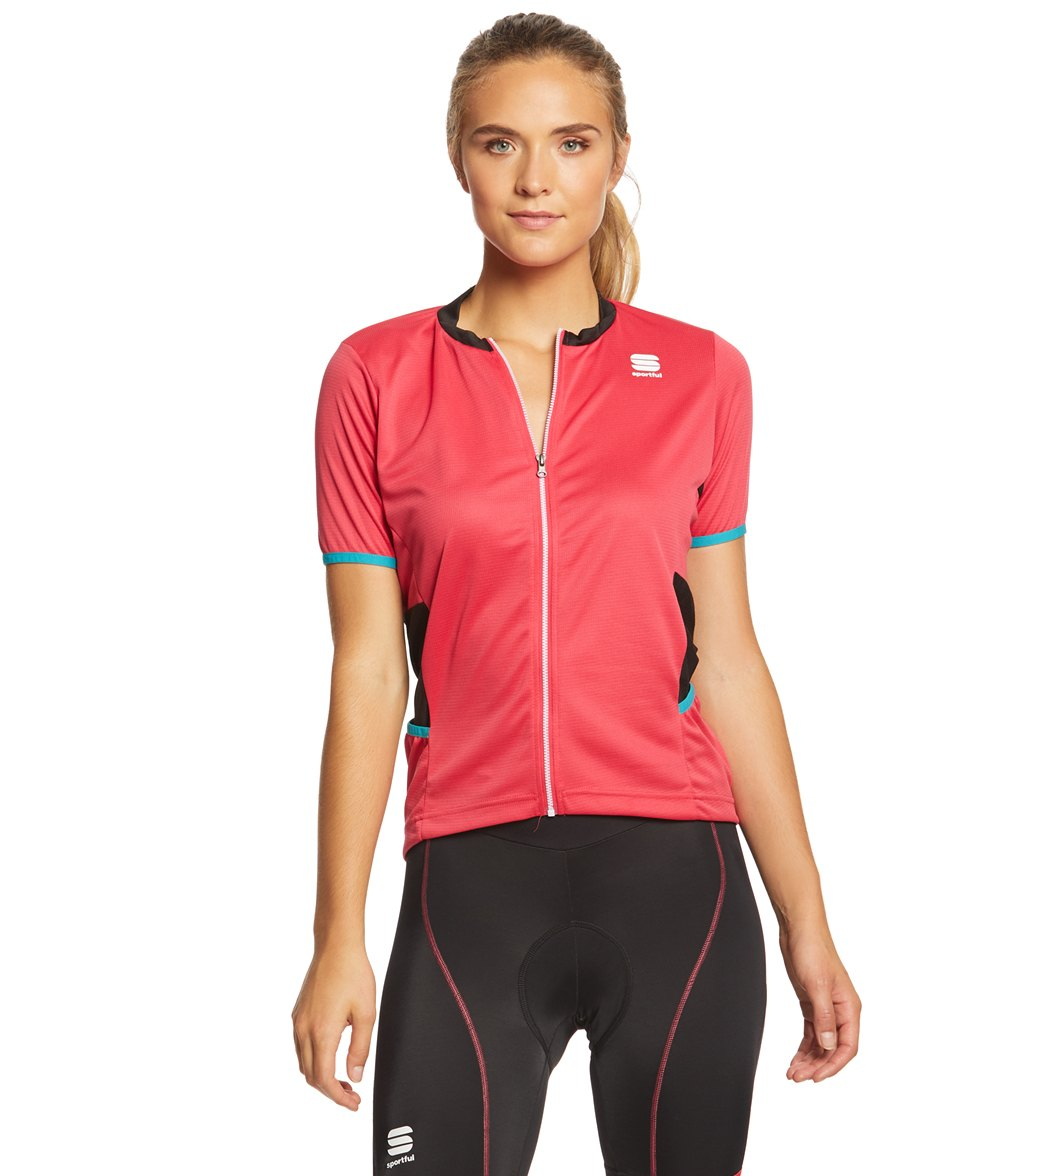 Sportful Women's Luna Cycling Jersey - Pink Coral/Black Medium Polyester - Swimoutlet.com